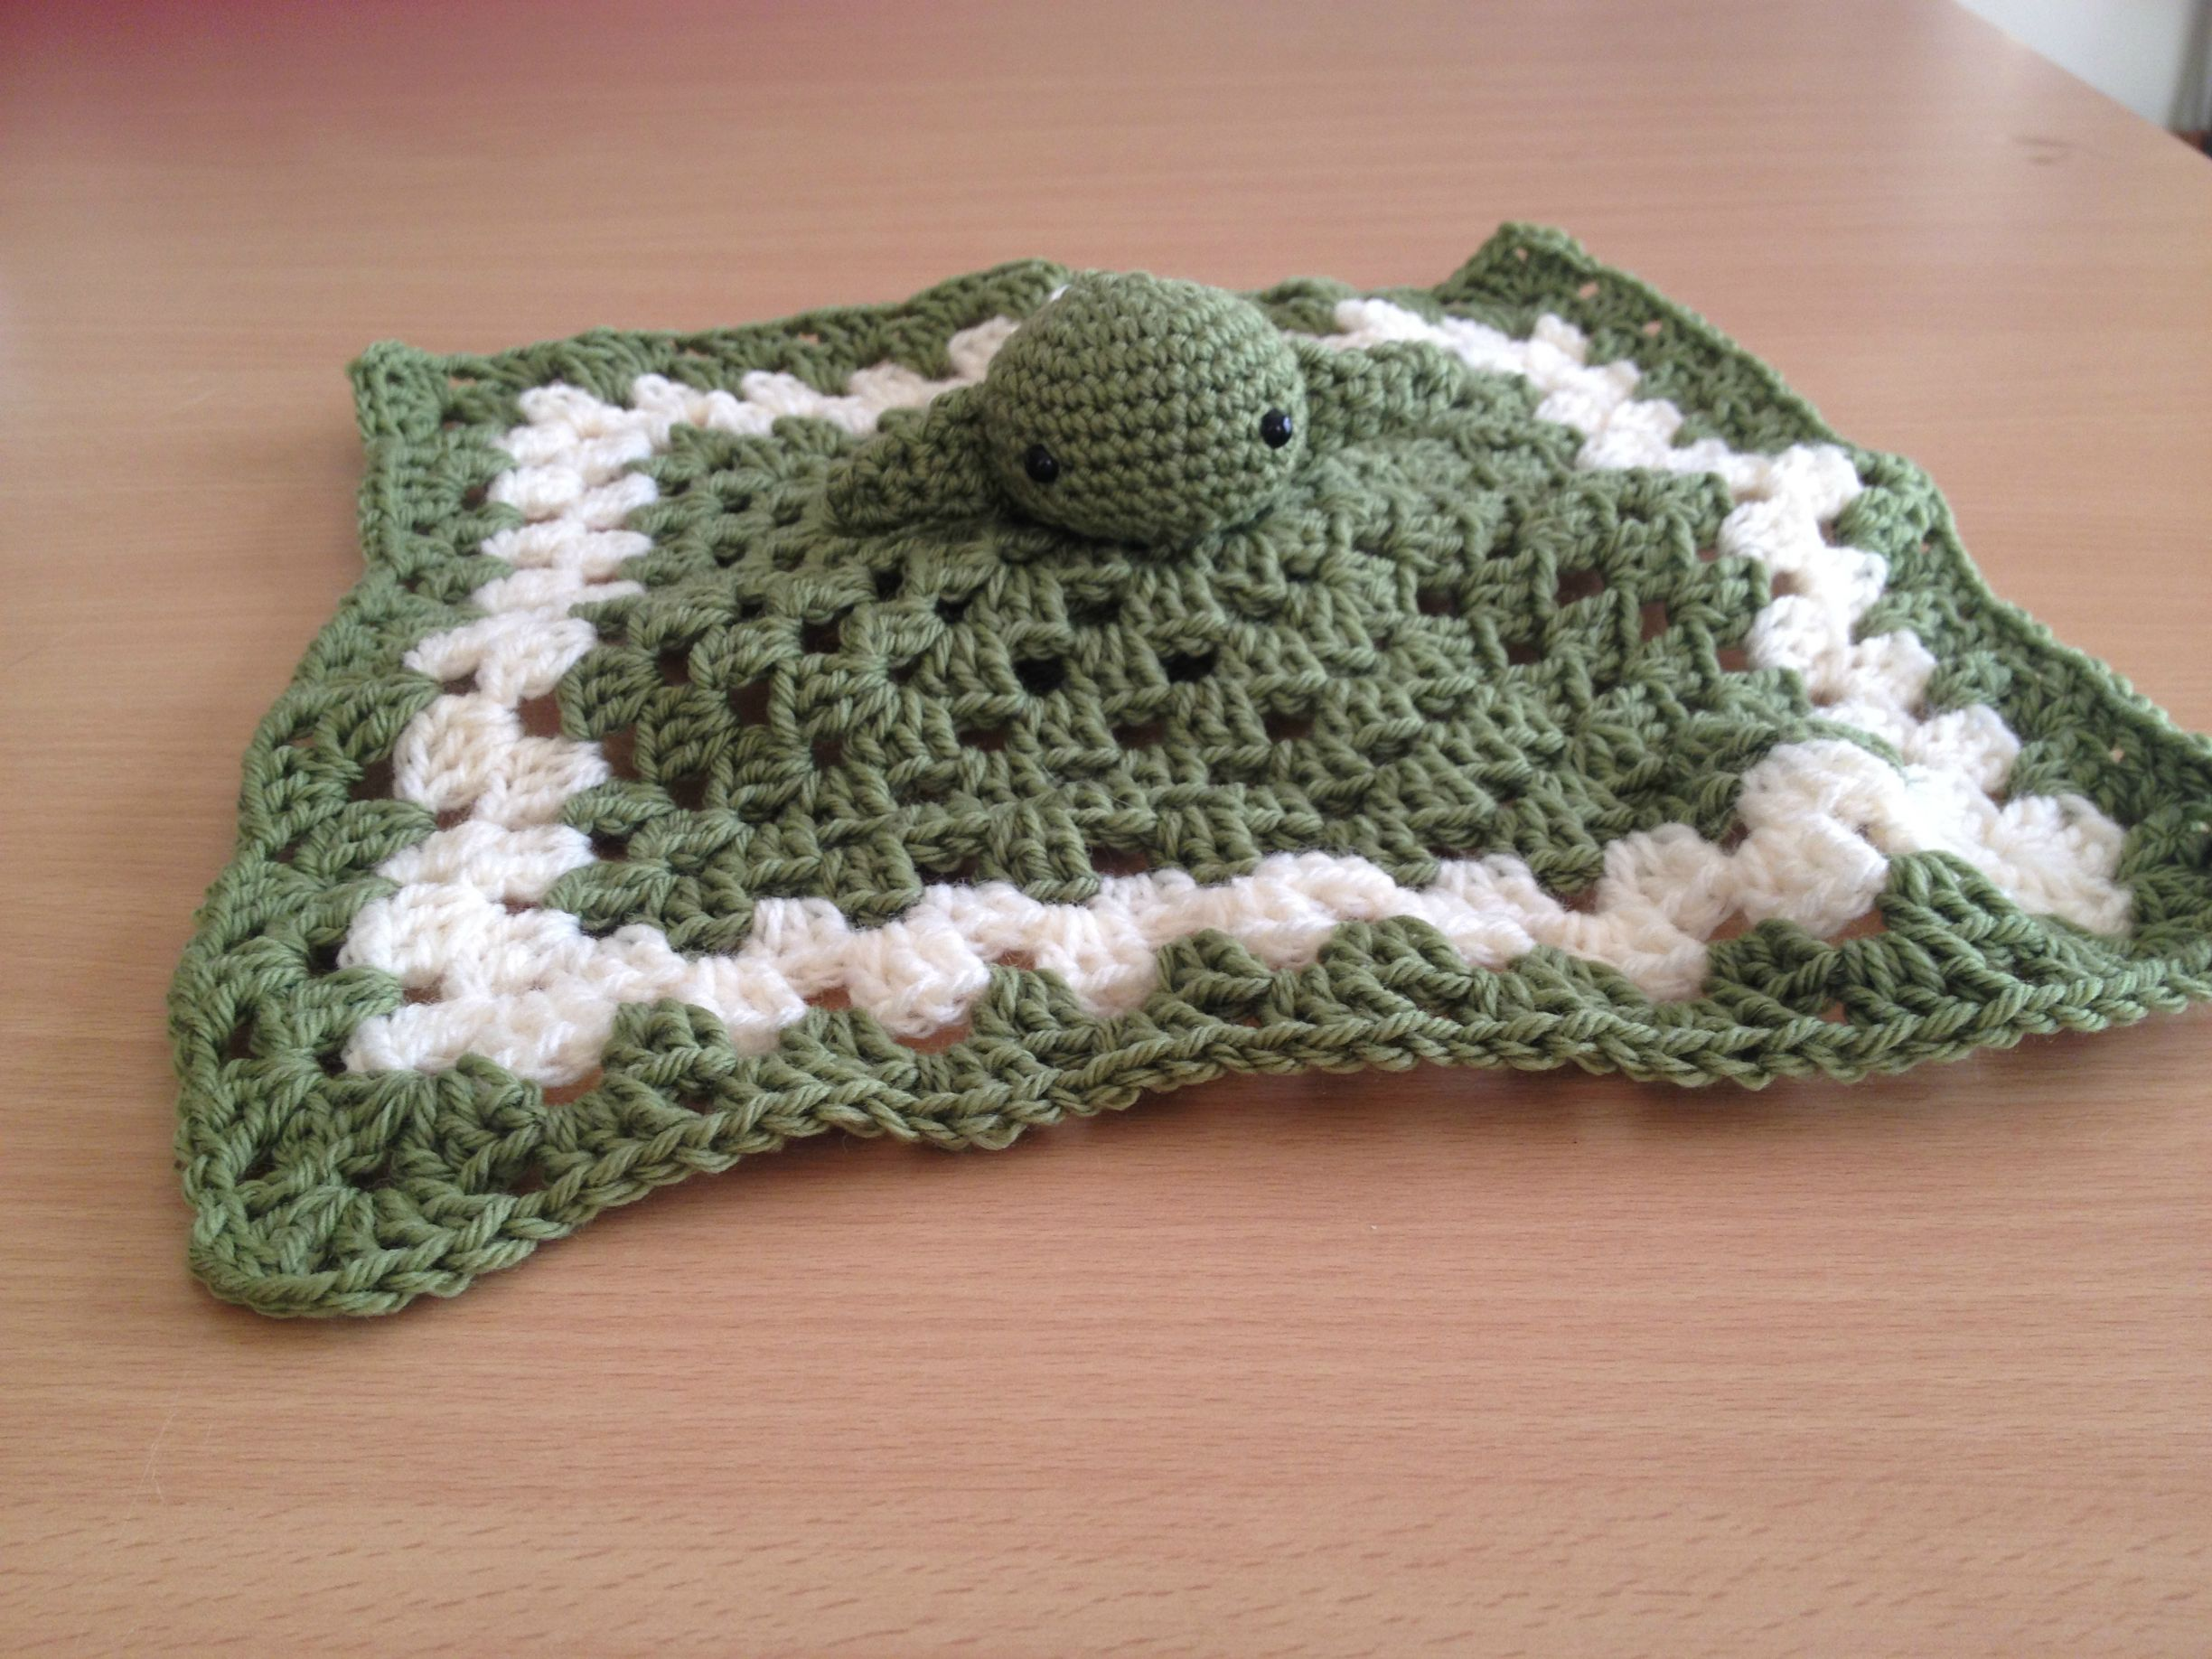 Babys First Crocheted Yoda Outfit Make: